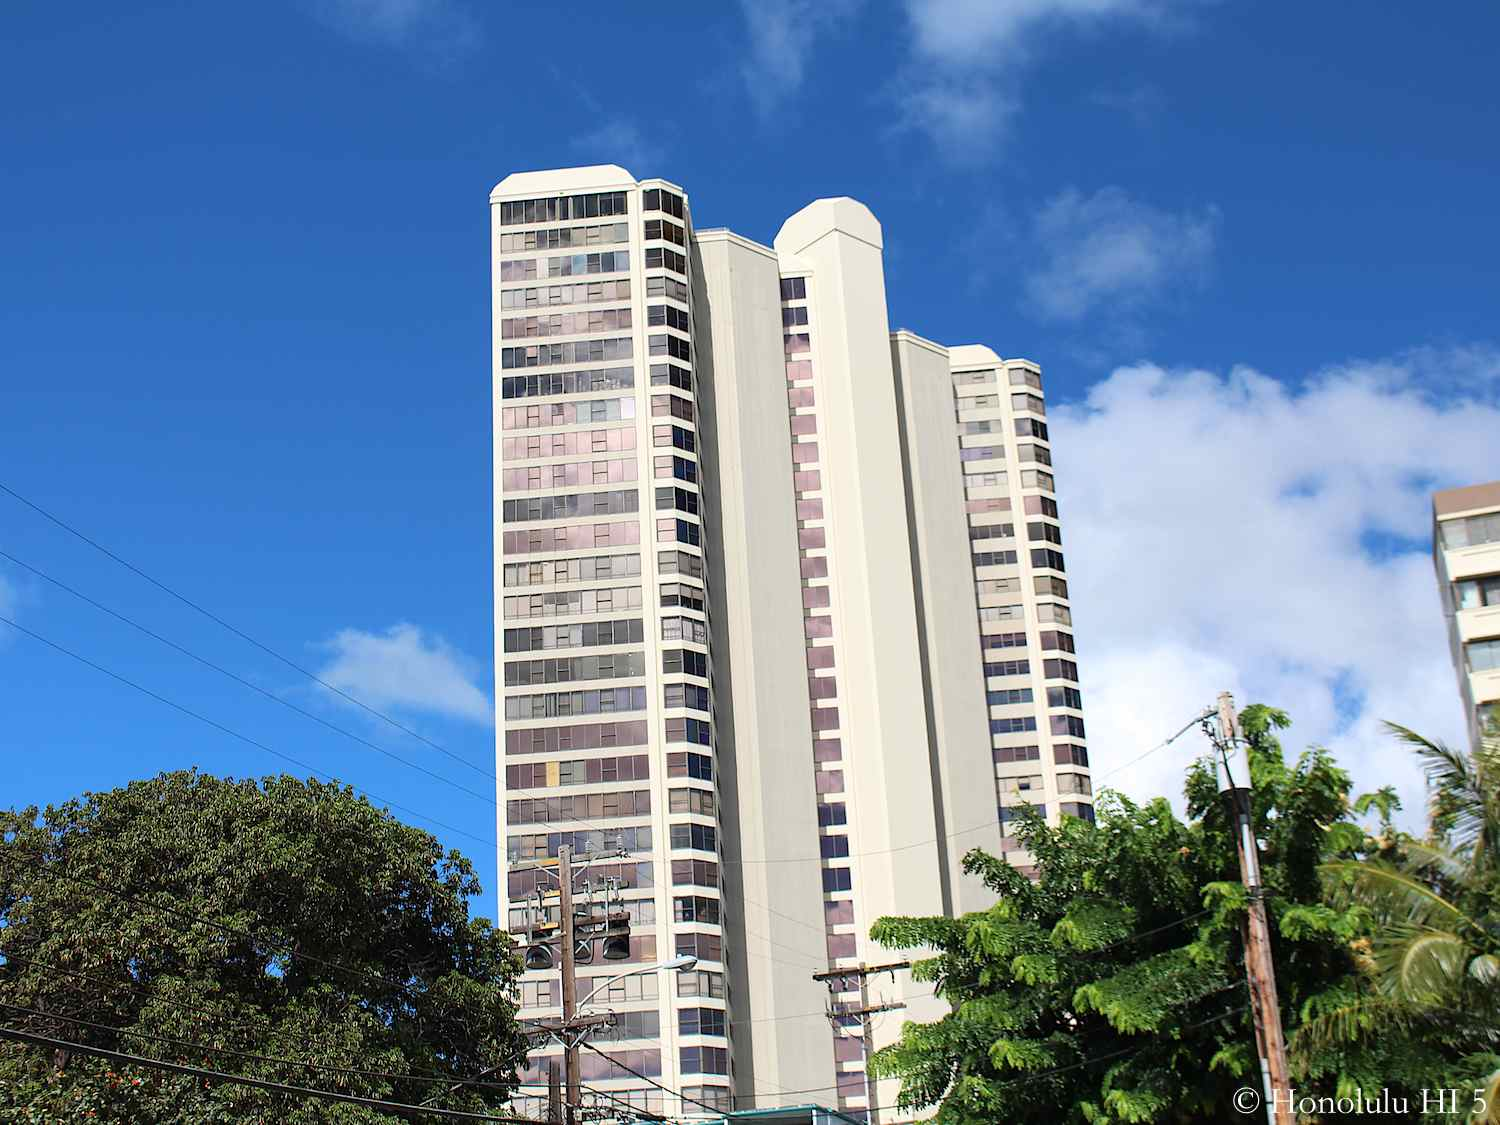 Backside of Admiral Thomas Condos in Honolulu